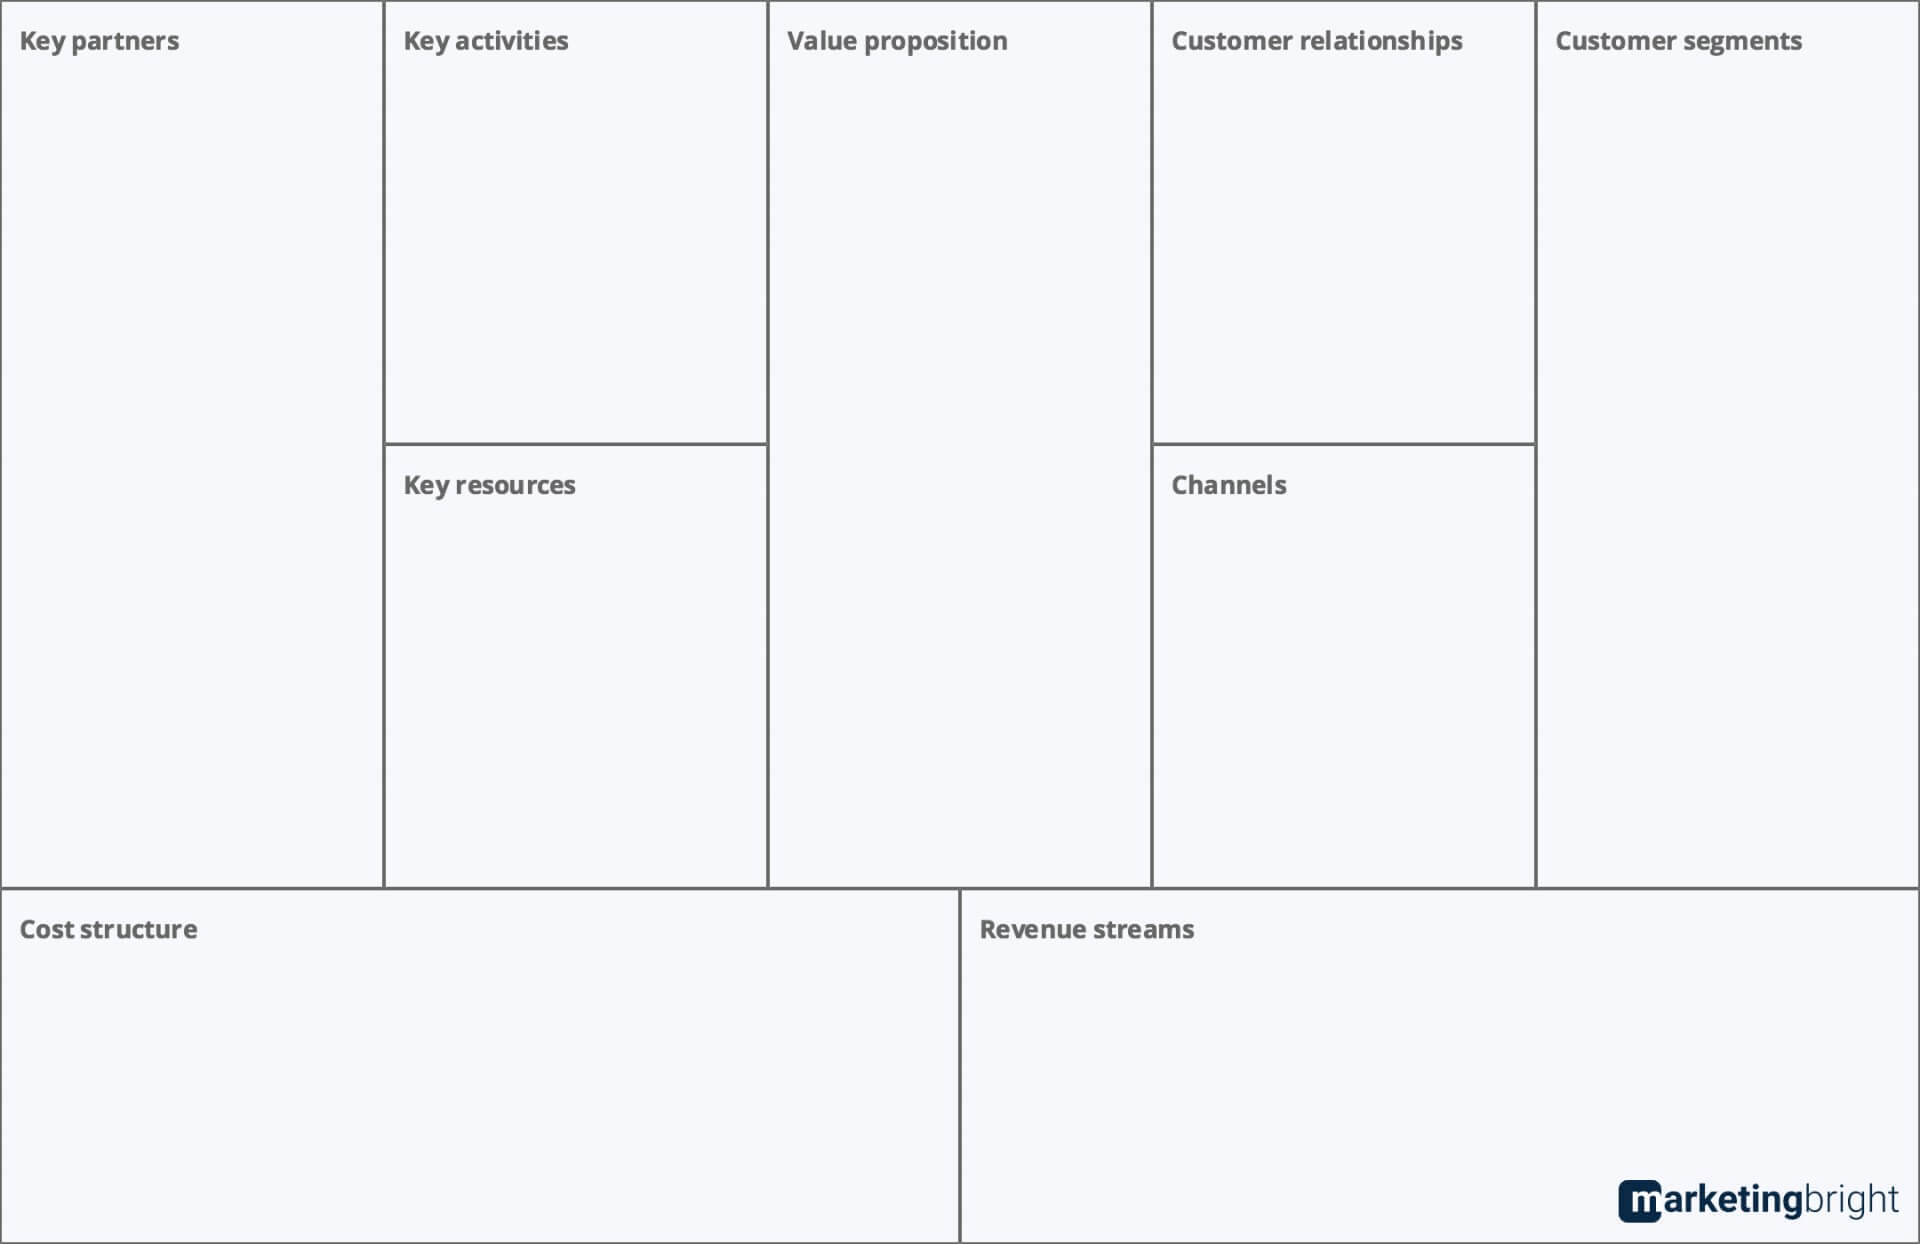 001 Free Business Model Canvas Template Word Doc Excellent With Regard To Business Model Canvas Template Word